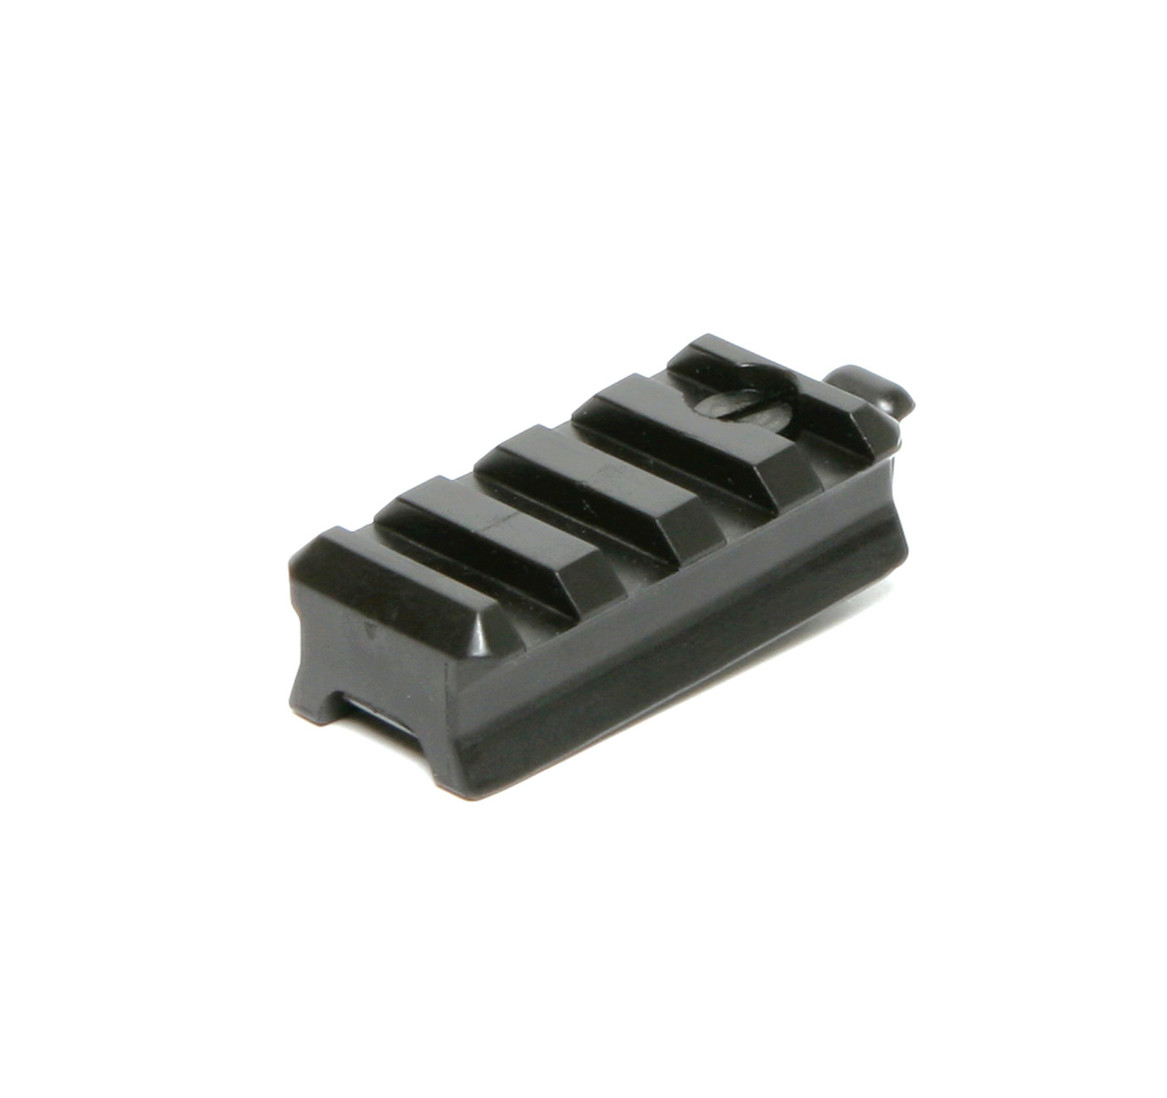 PICATINNY RAIL ADAPTER